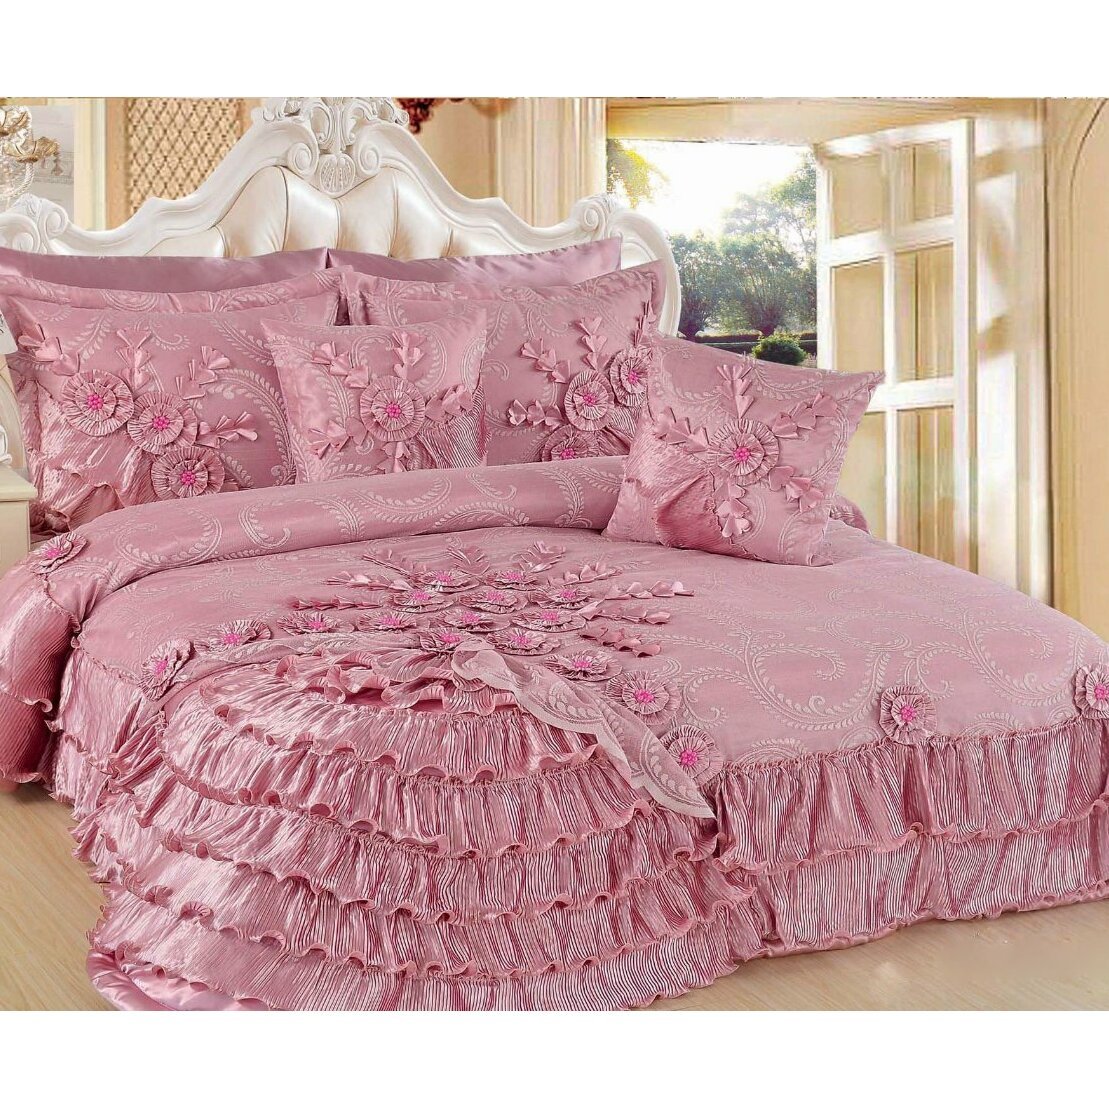 Dada Bedding Pink Blooming 5 Piece King Quilt Set